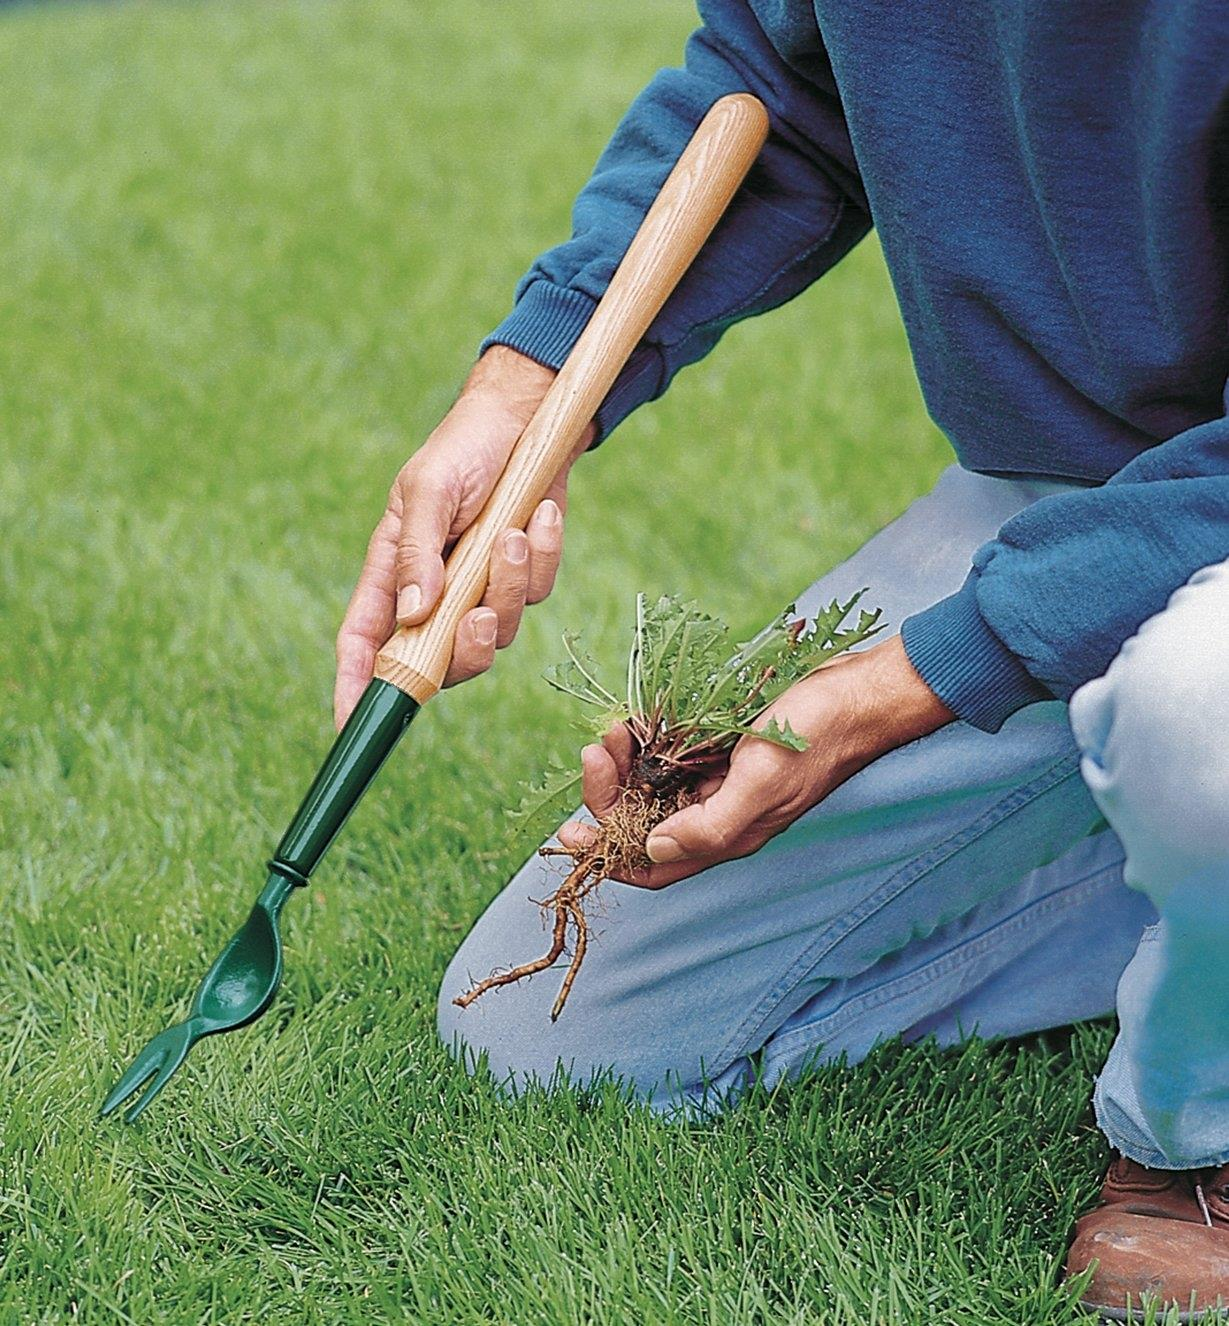 Using the short Dandelion Digger to remove a weed from a lawn